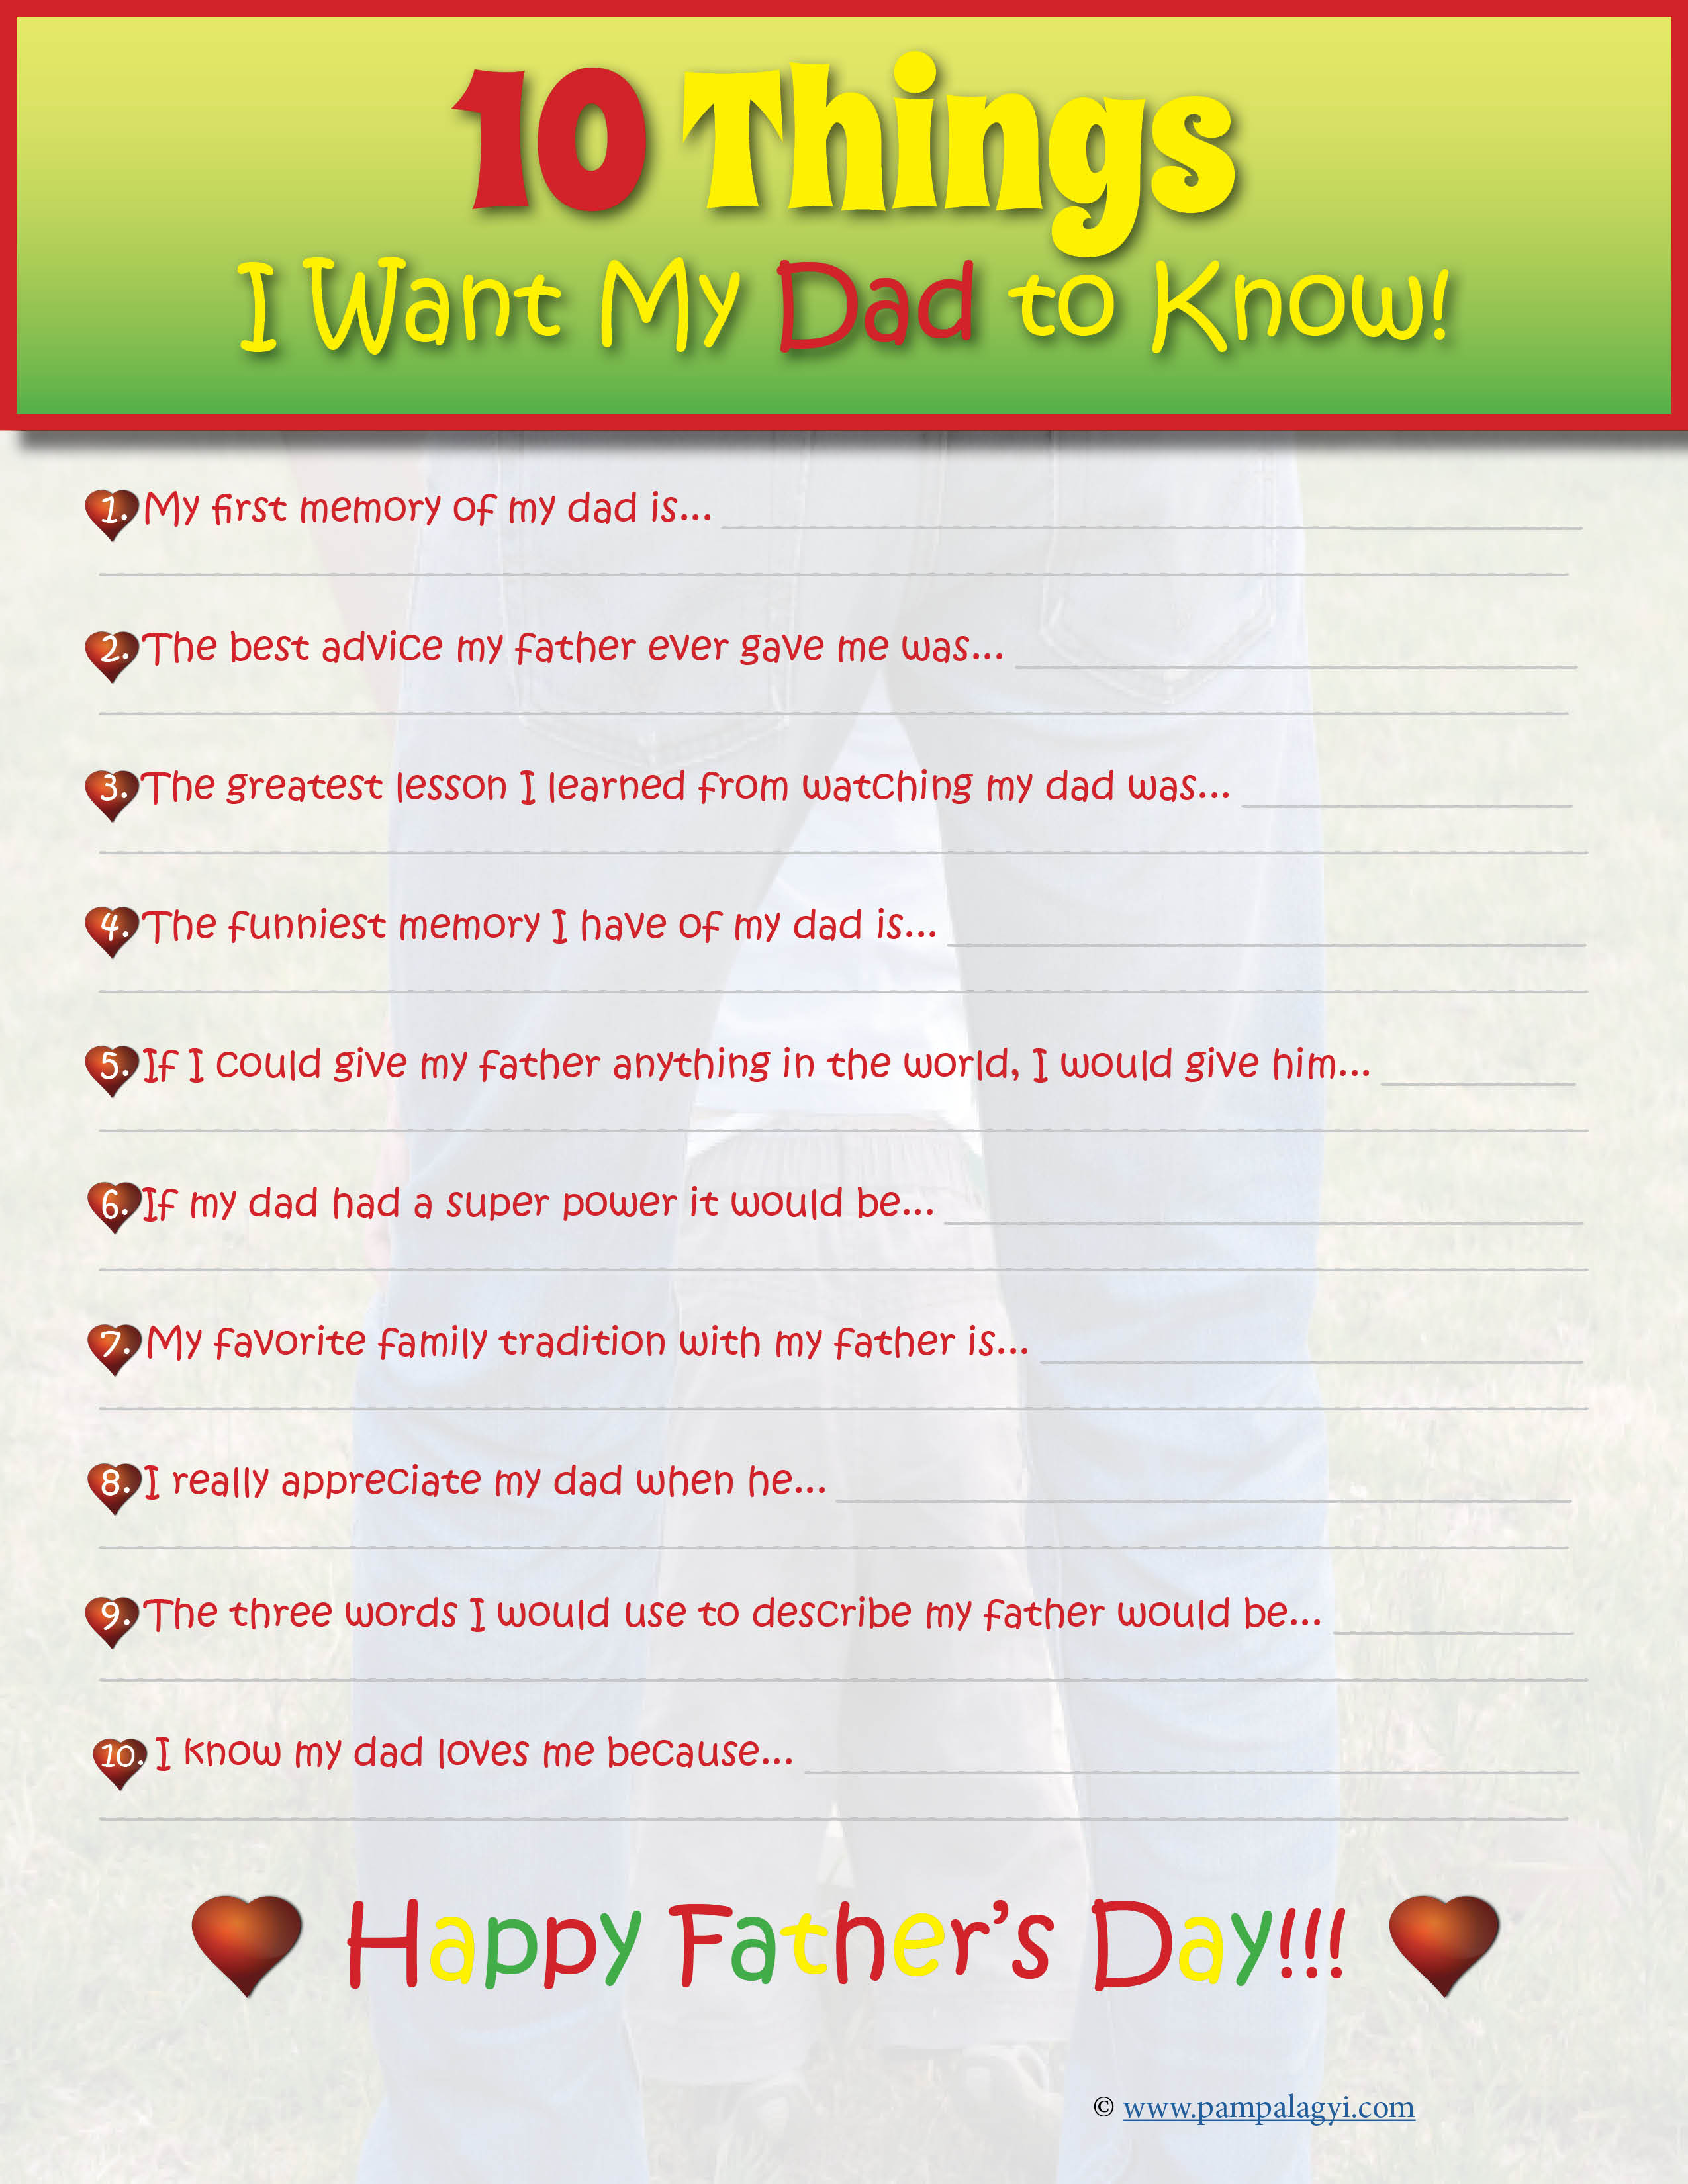 10 Things I Want My Father to Know